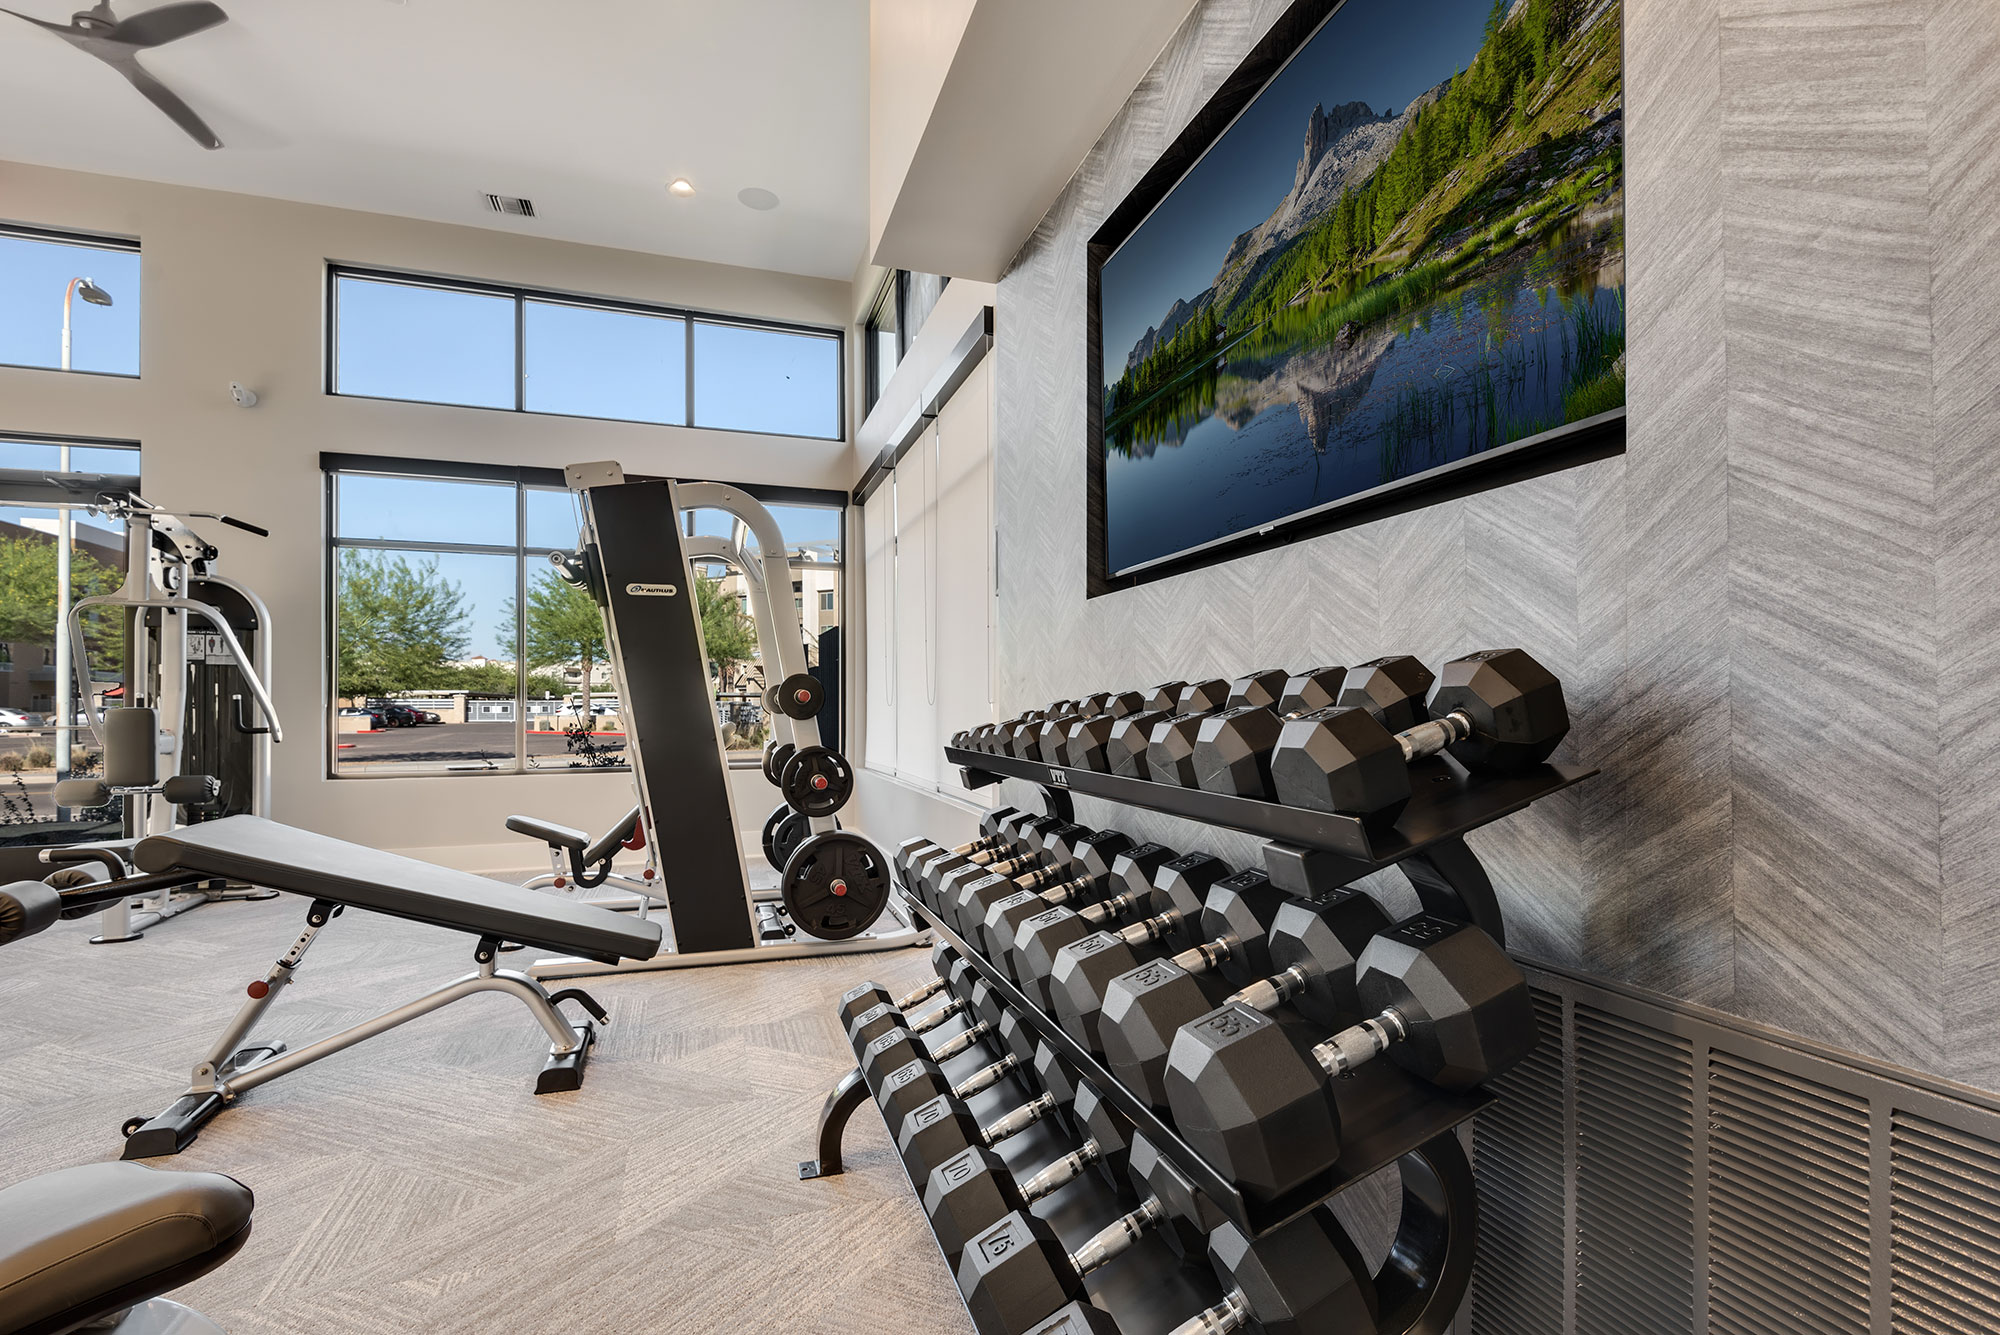 Riata - Fitness room free weights